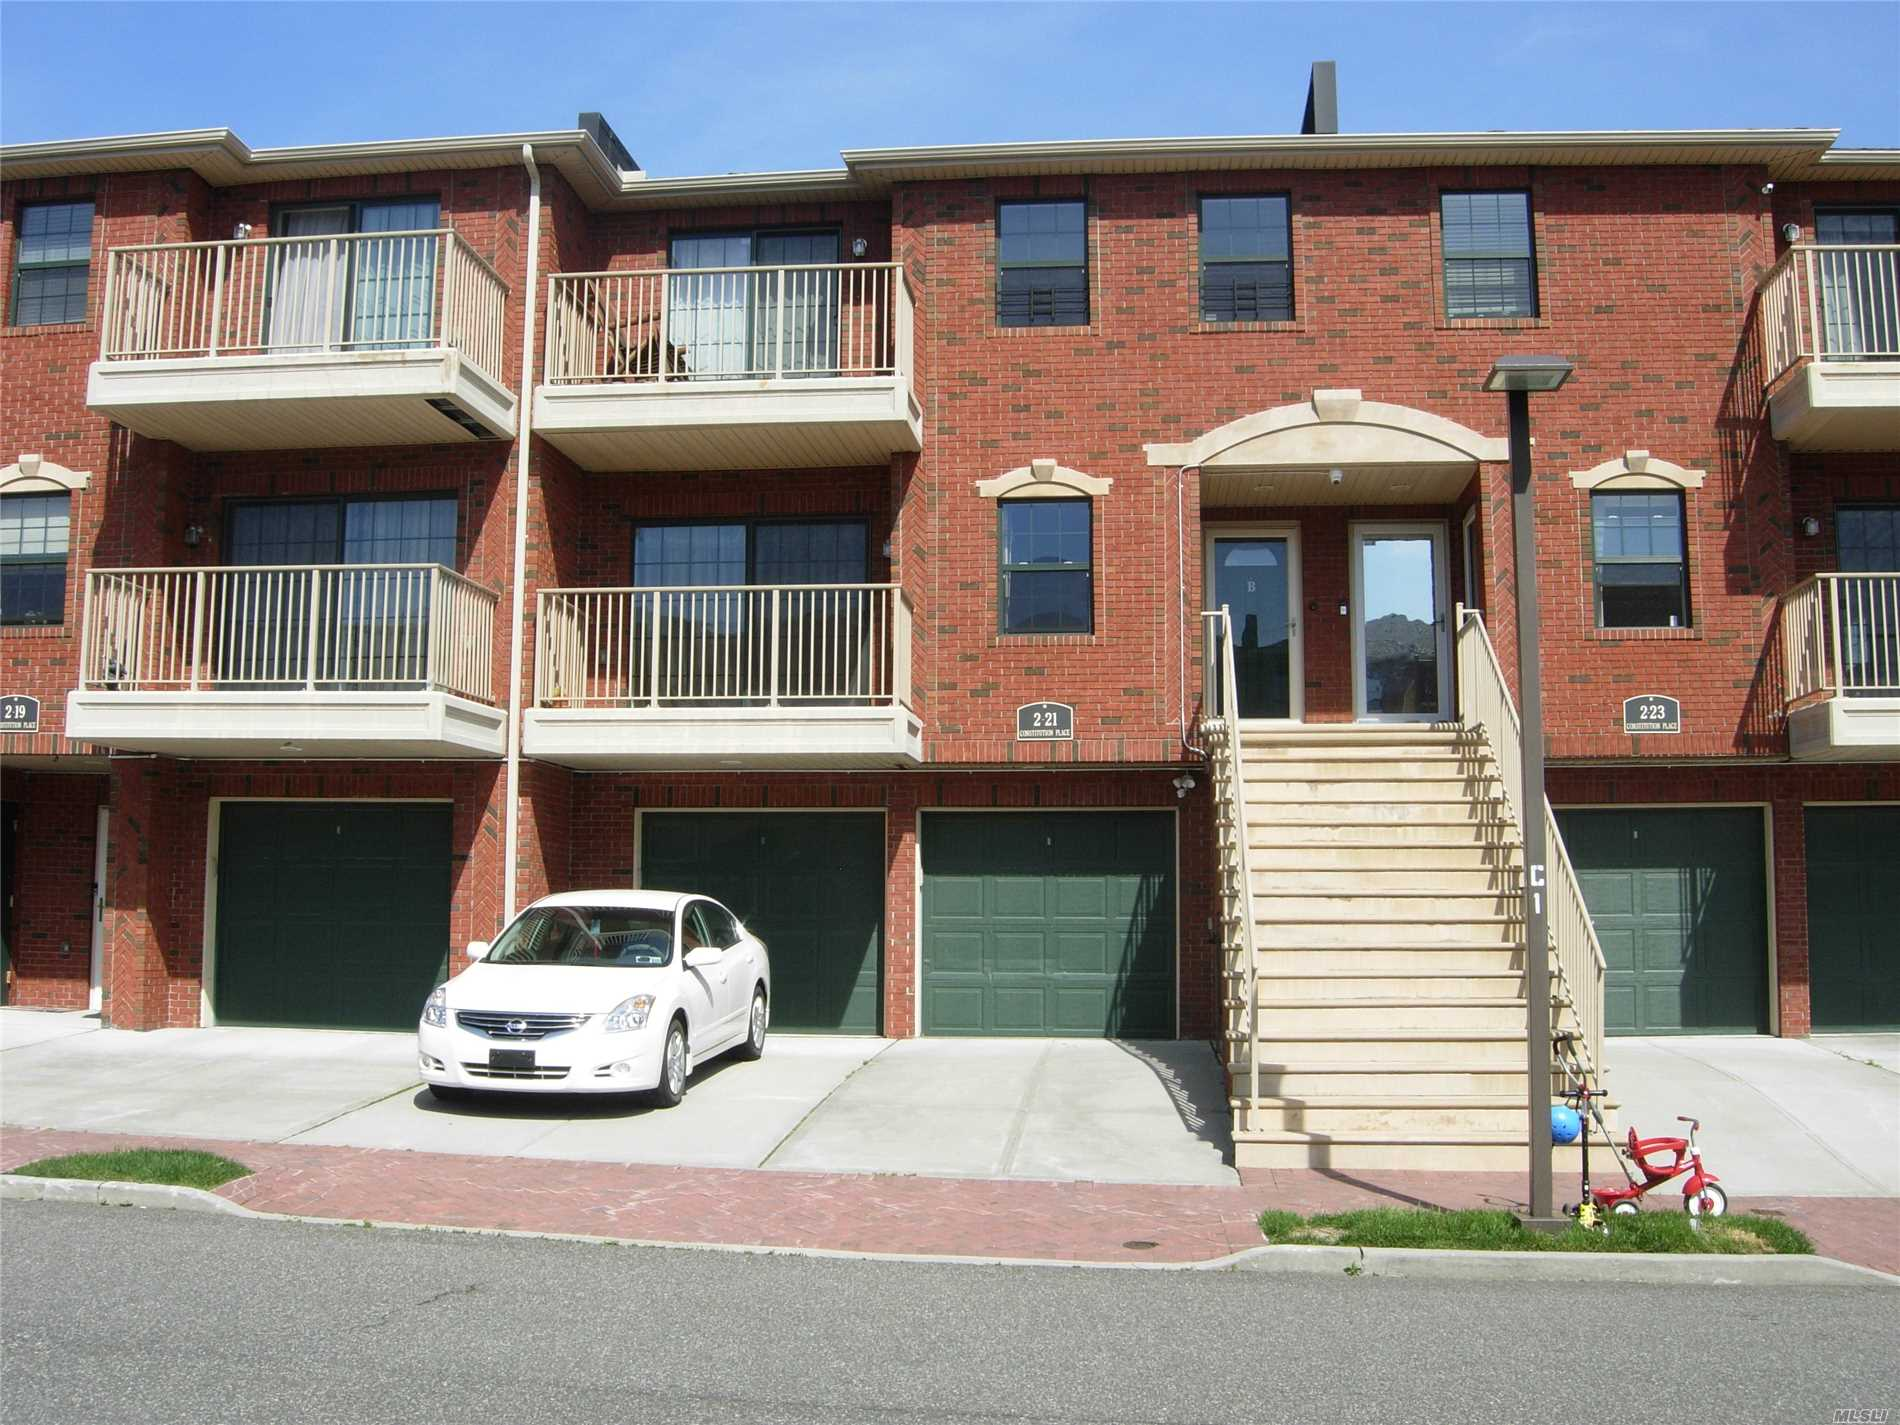 Extra Large Duplex Unit in a GATED Community. The Rear Balcony and windows has Park/Water/Bridge VIEW. Mint condition Duplex condo unit ( living space 2100 sqf ), There is 9 more years tax abatement on property. a sliding door on 1 floor to backyard. Near Q25 bus stop. 5 min drive to 20th Ave shopping mall. Assigned parking spot #110.